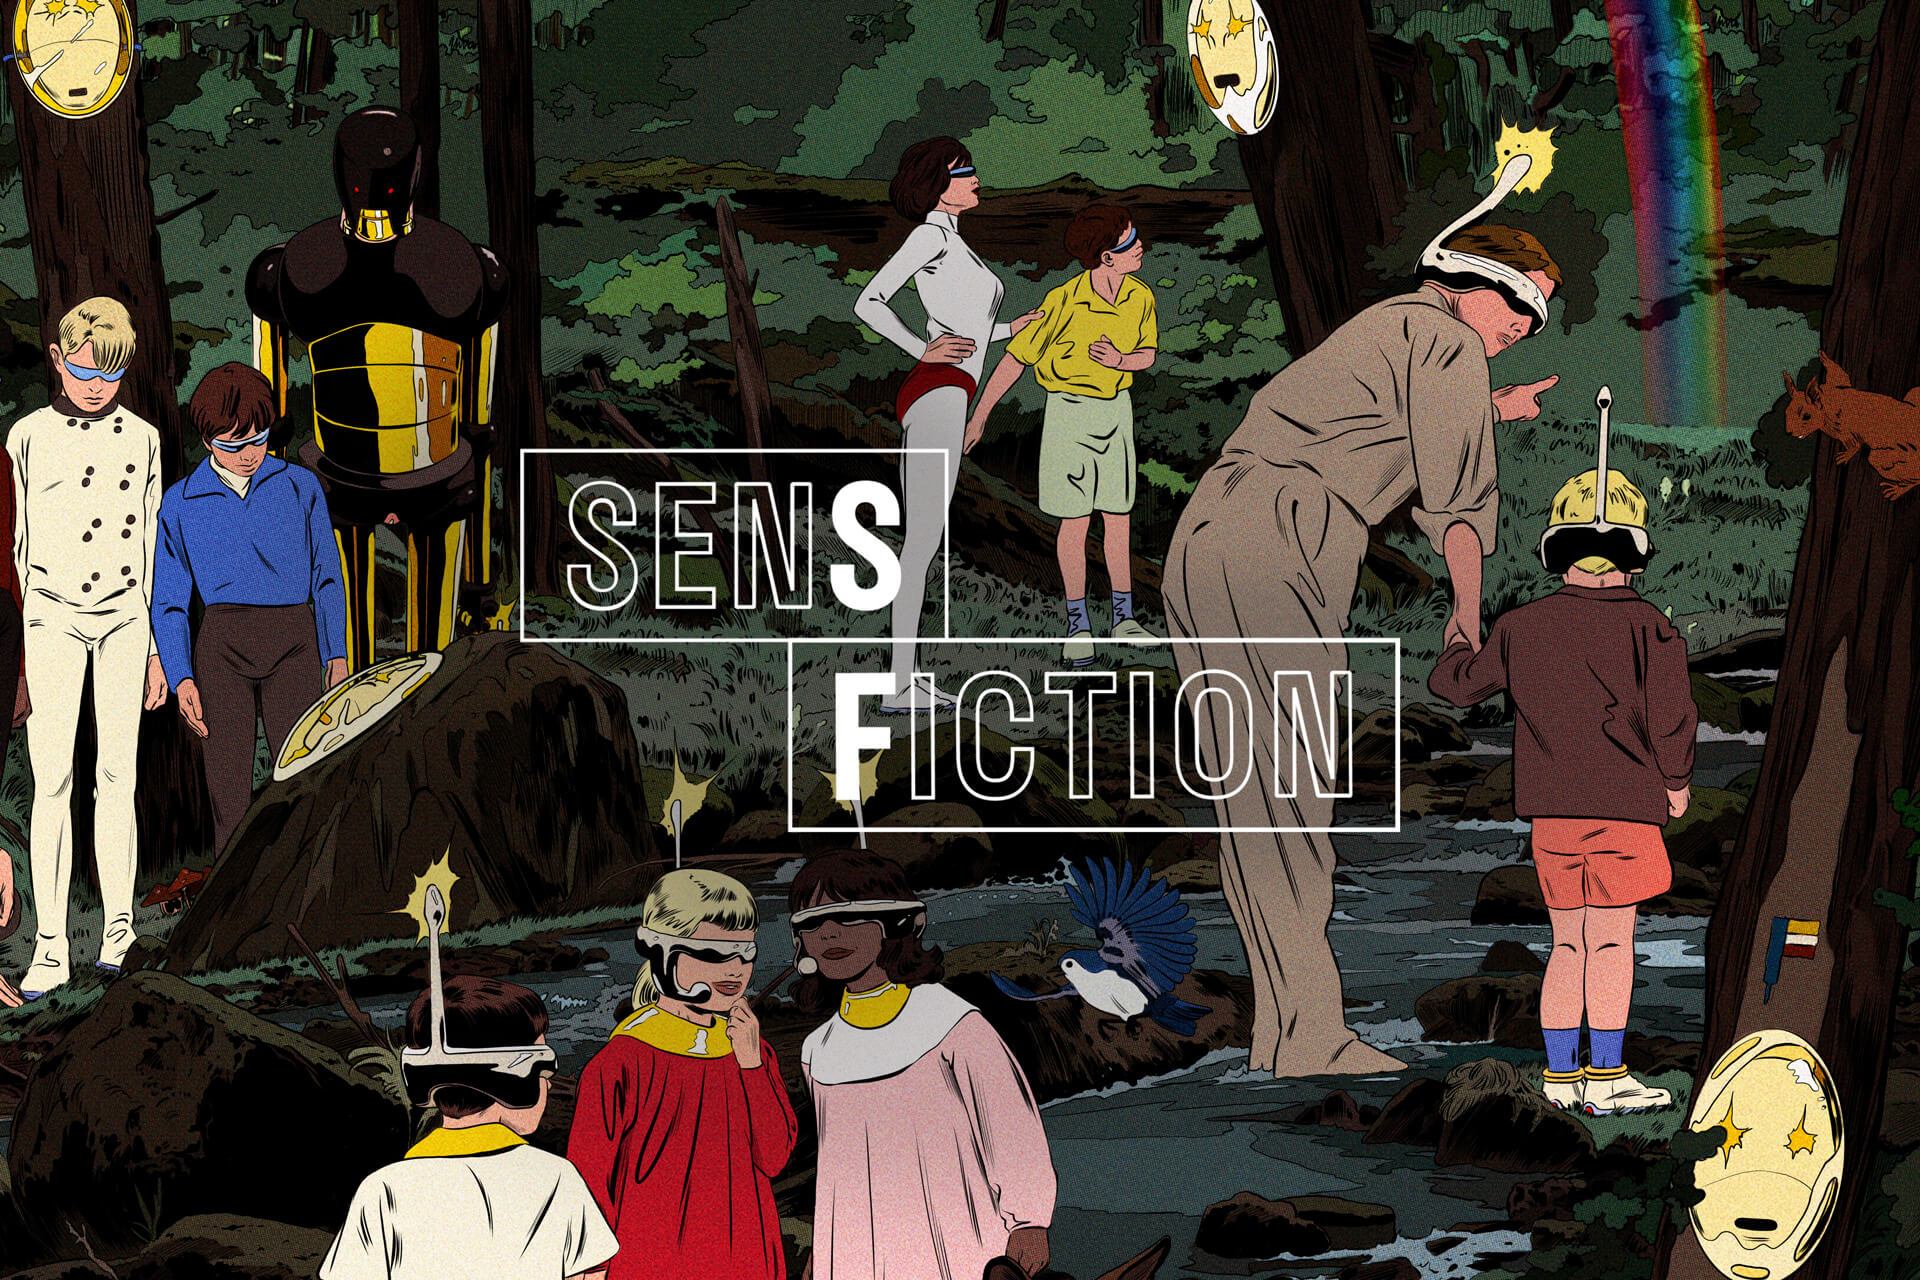 Sens Fiction